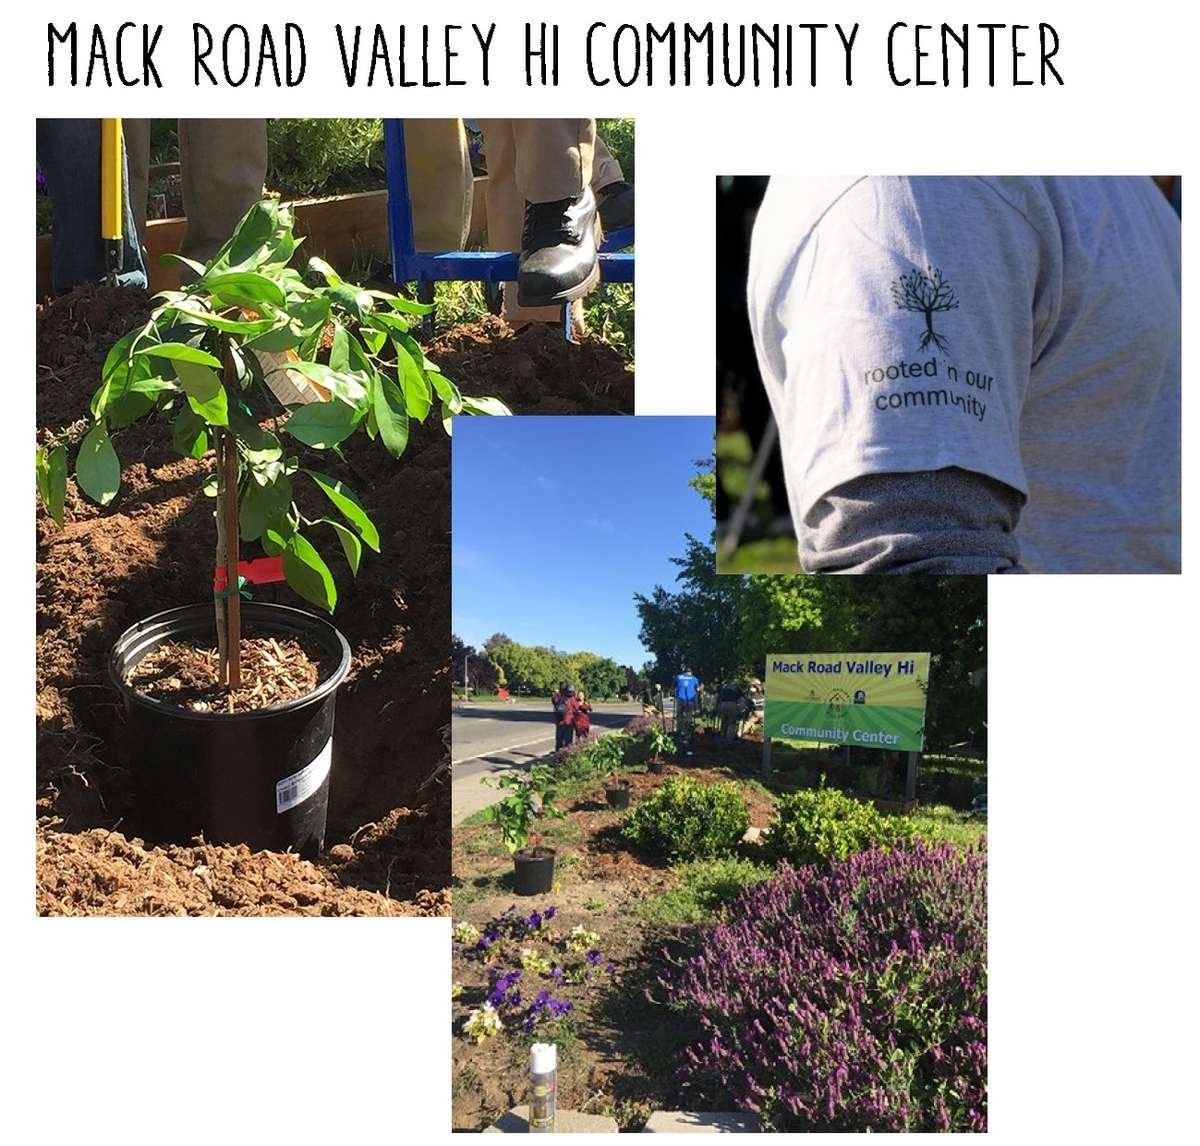 Image of Mack Road Valley Hi Planting Event